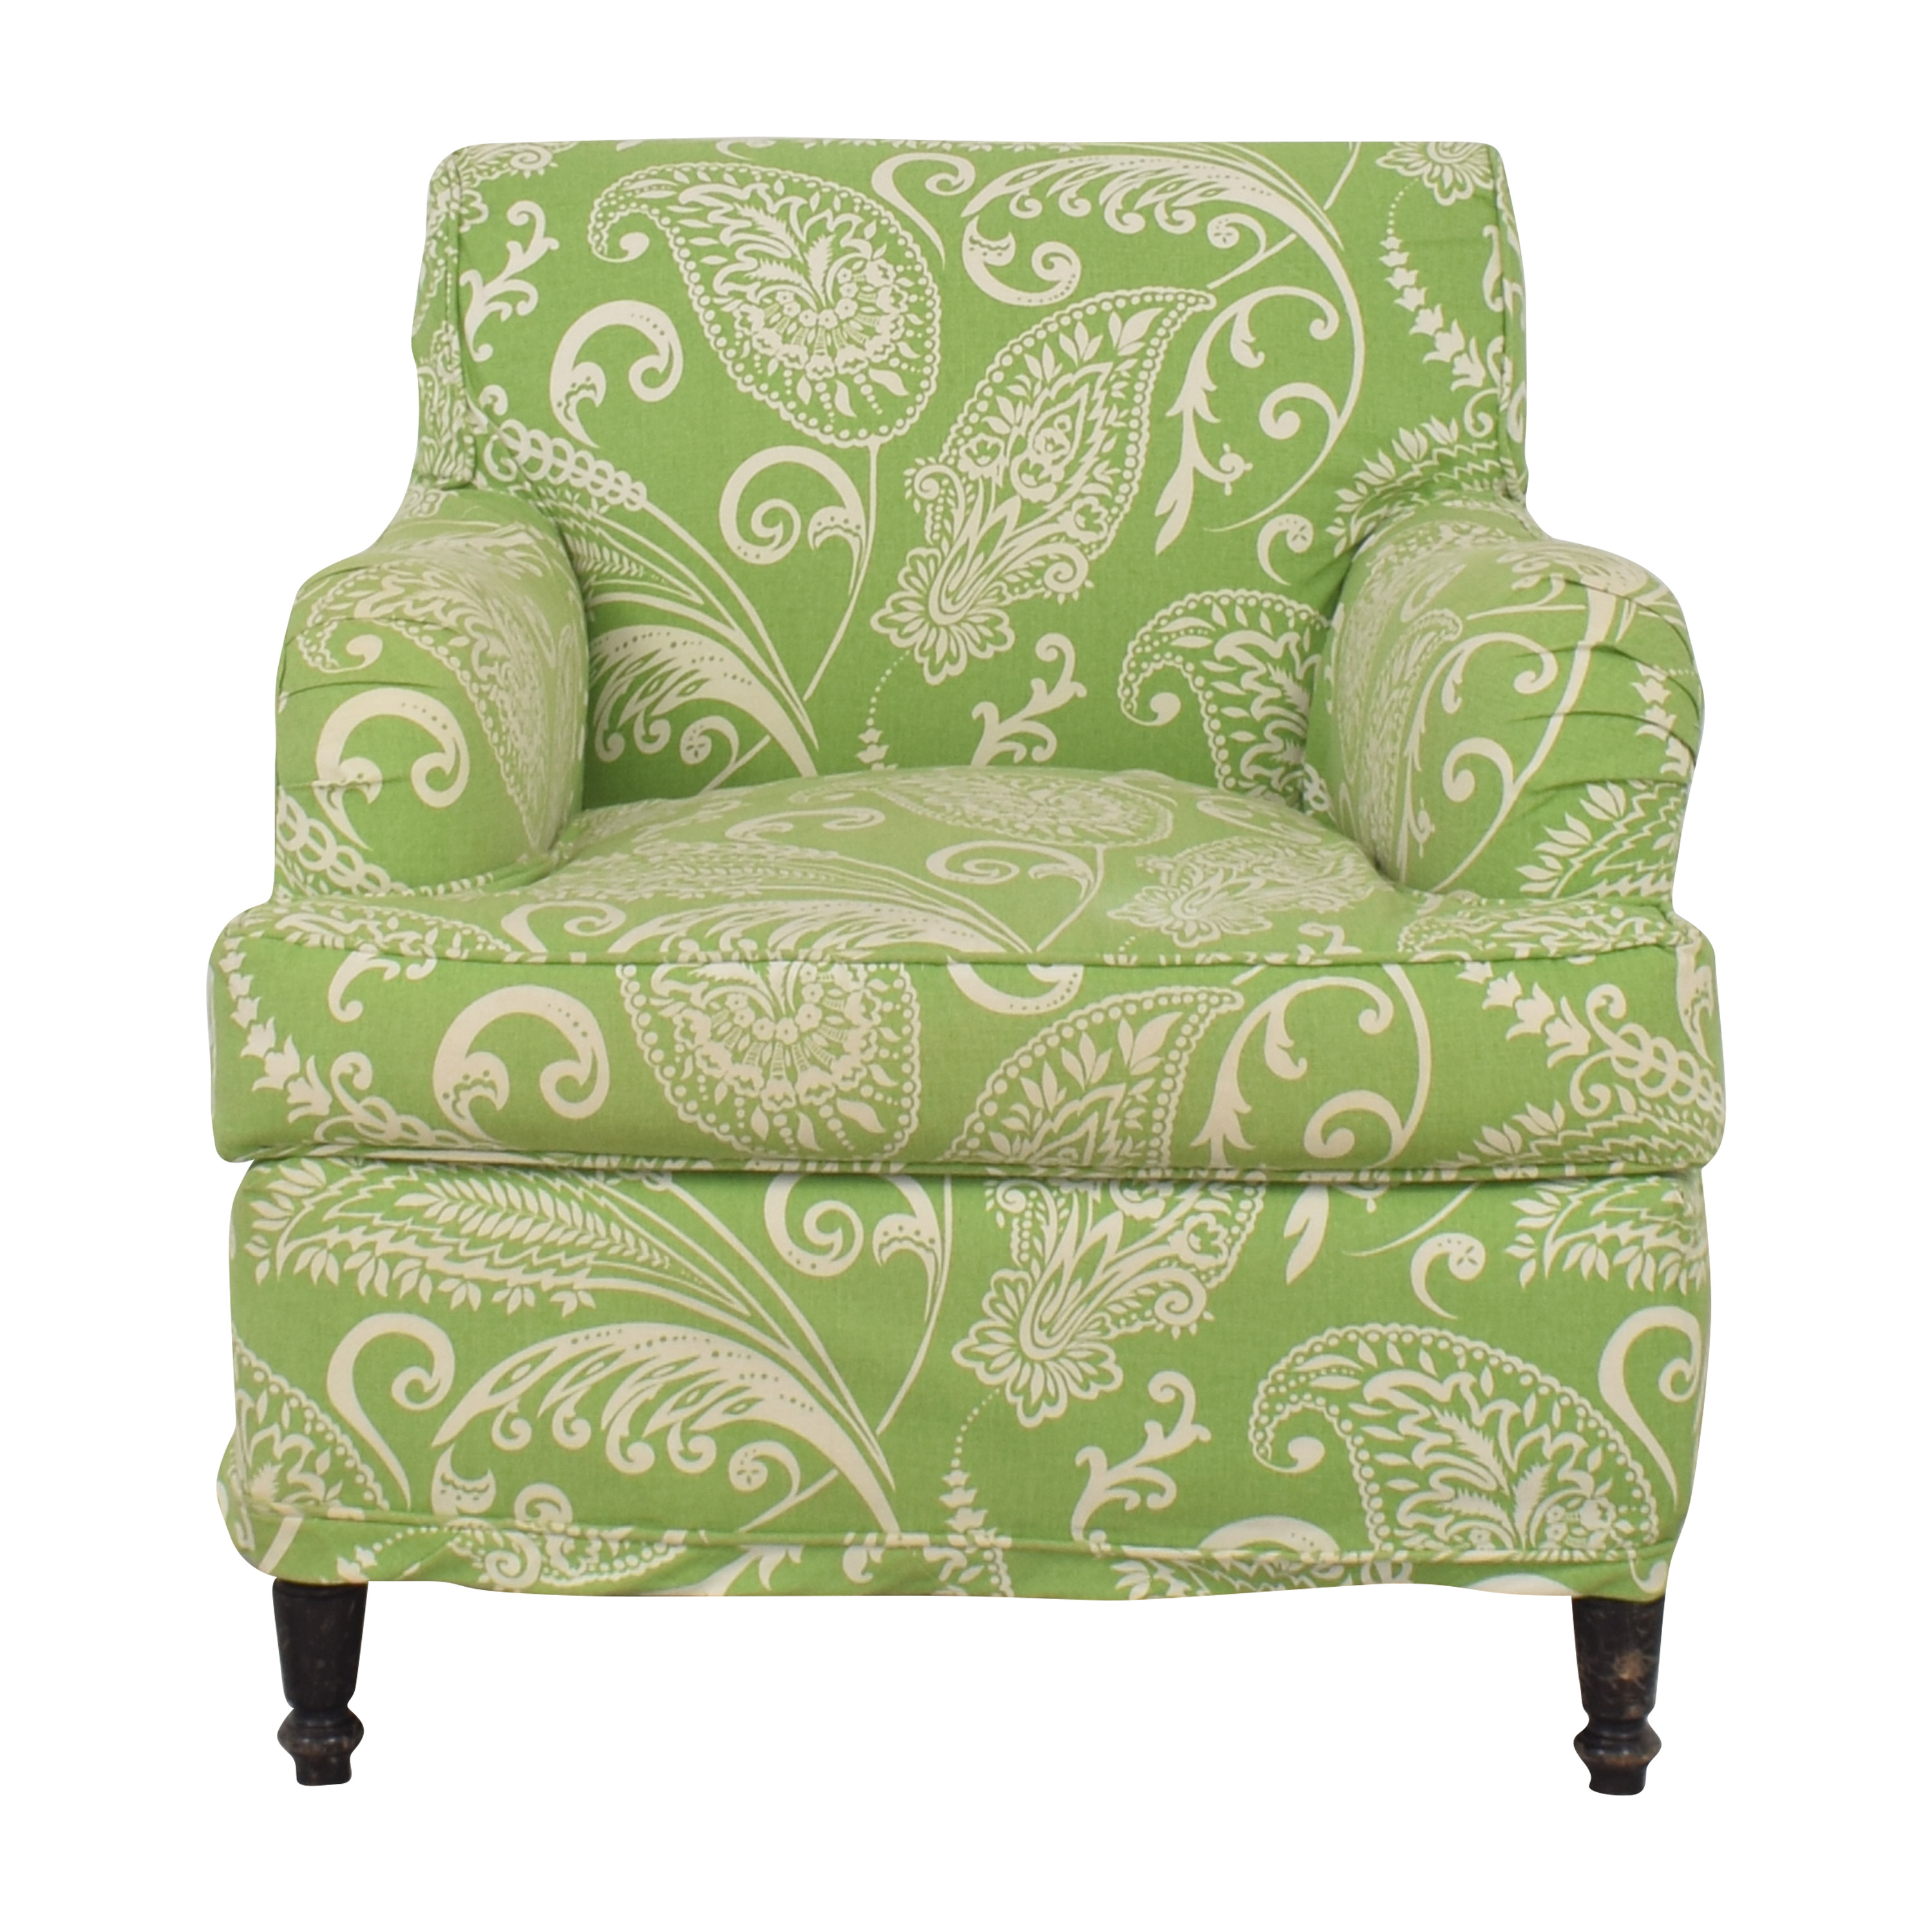 Cisco Brothers Cisco Brothers Upholstered Armchair second hand